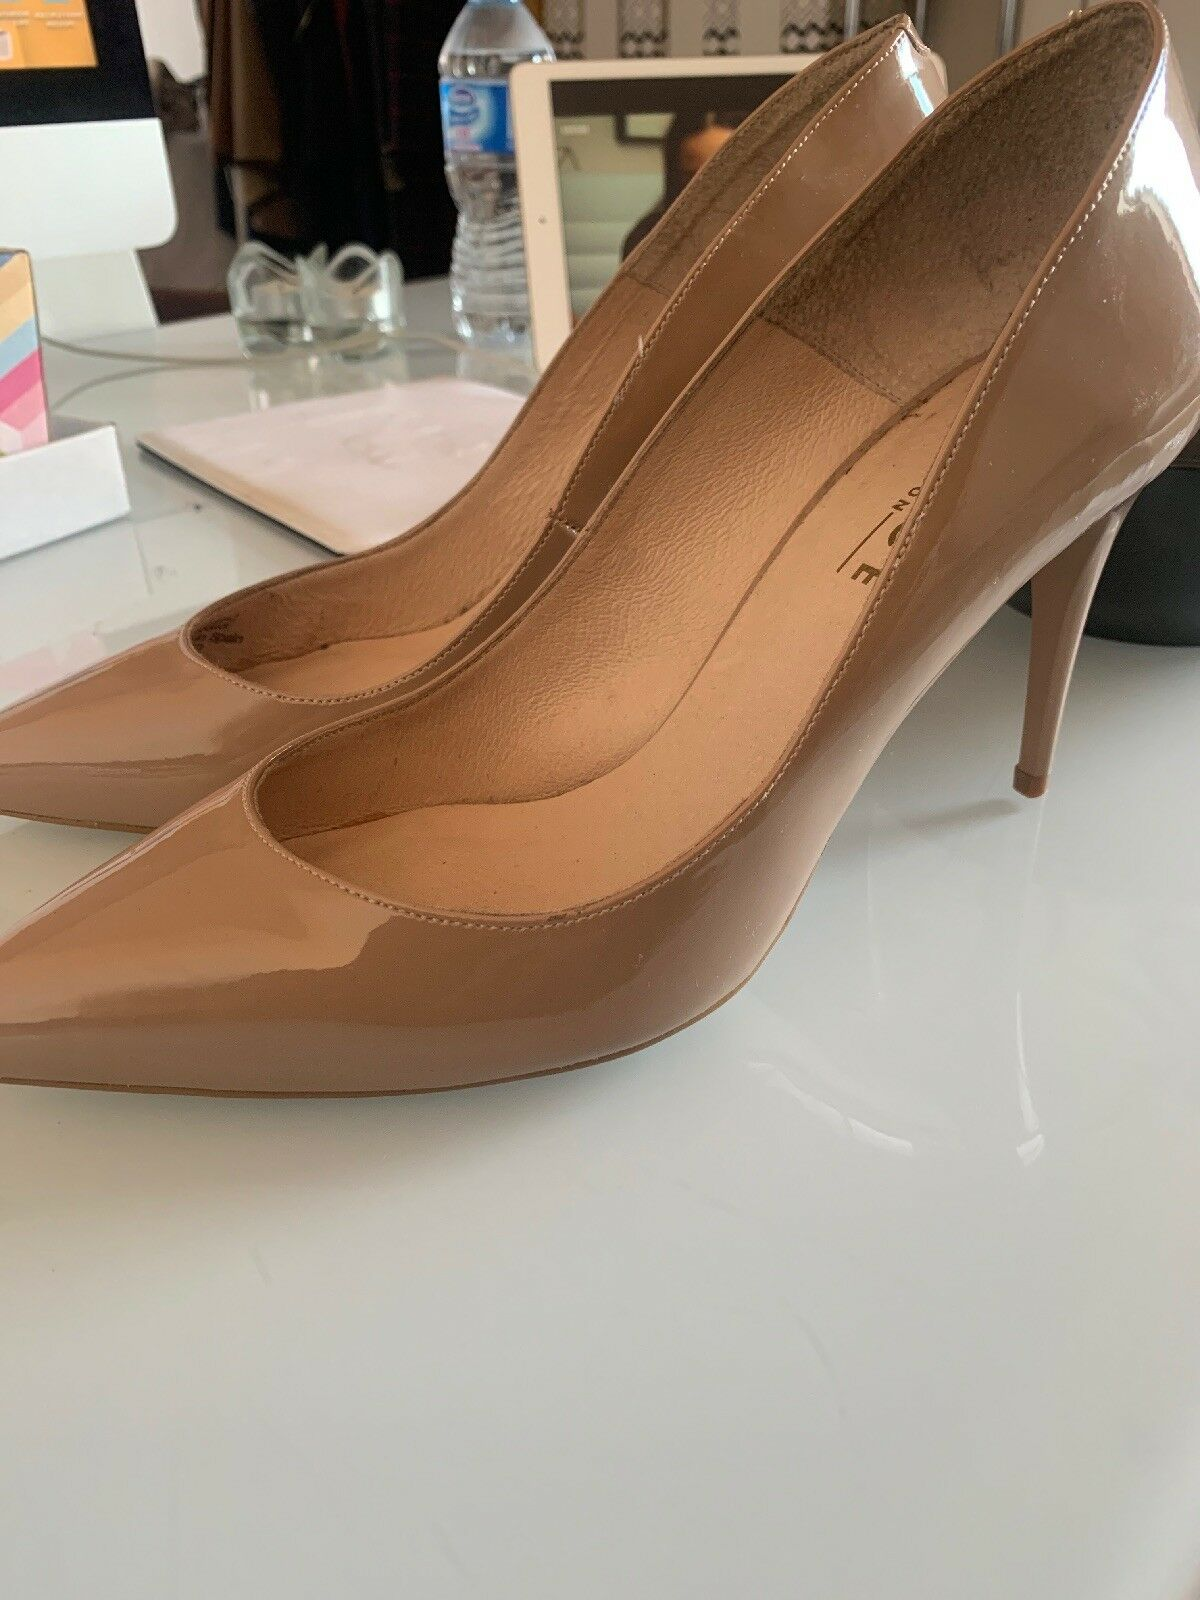 Office nude patent court fleur heels Meghan duchess Kate classic xmas party